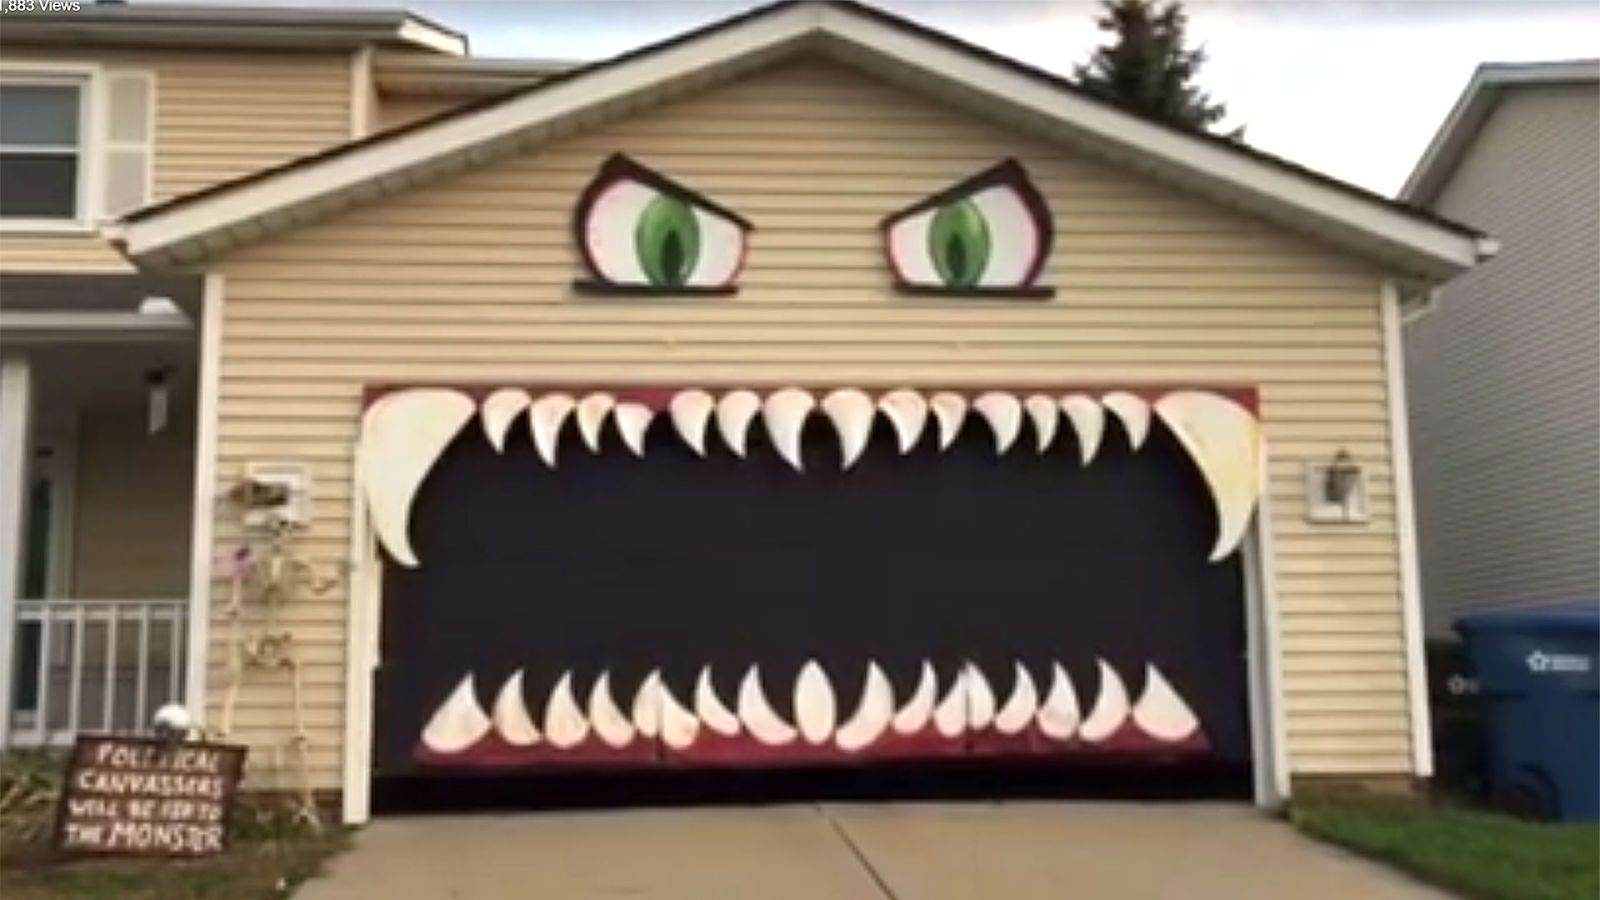 This Clever Halloween Idea Will Make You Want to Be *That* Neighbor - Halloween Decorations For The Office